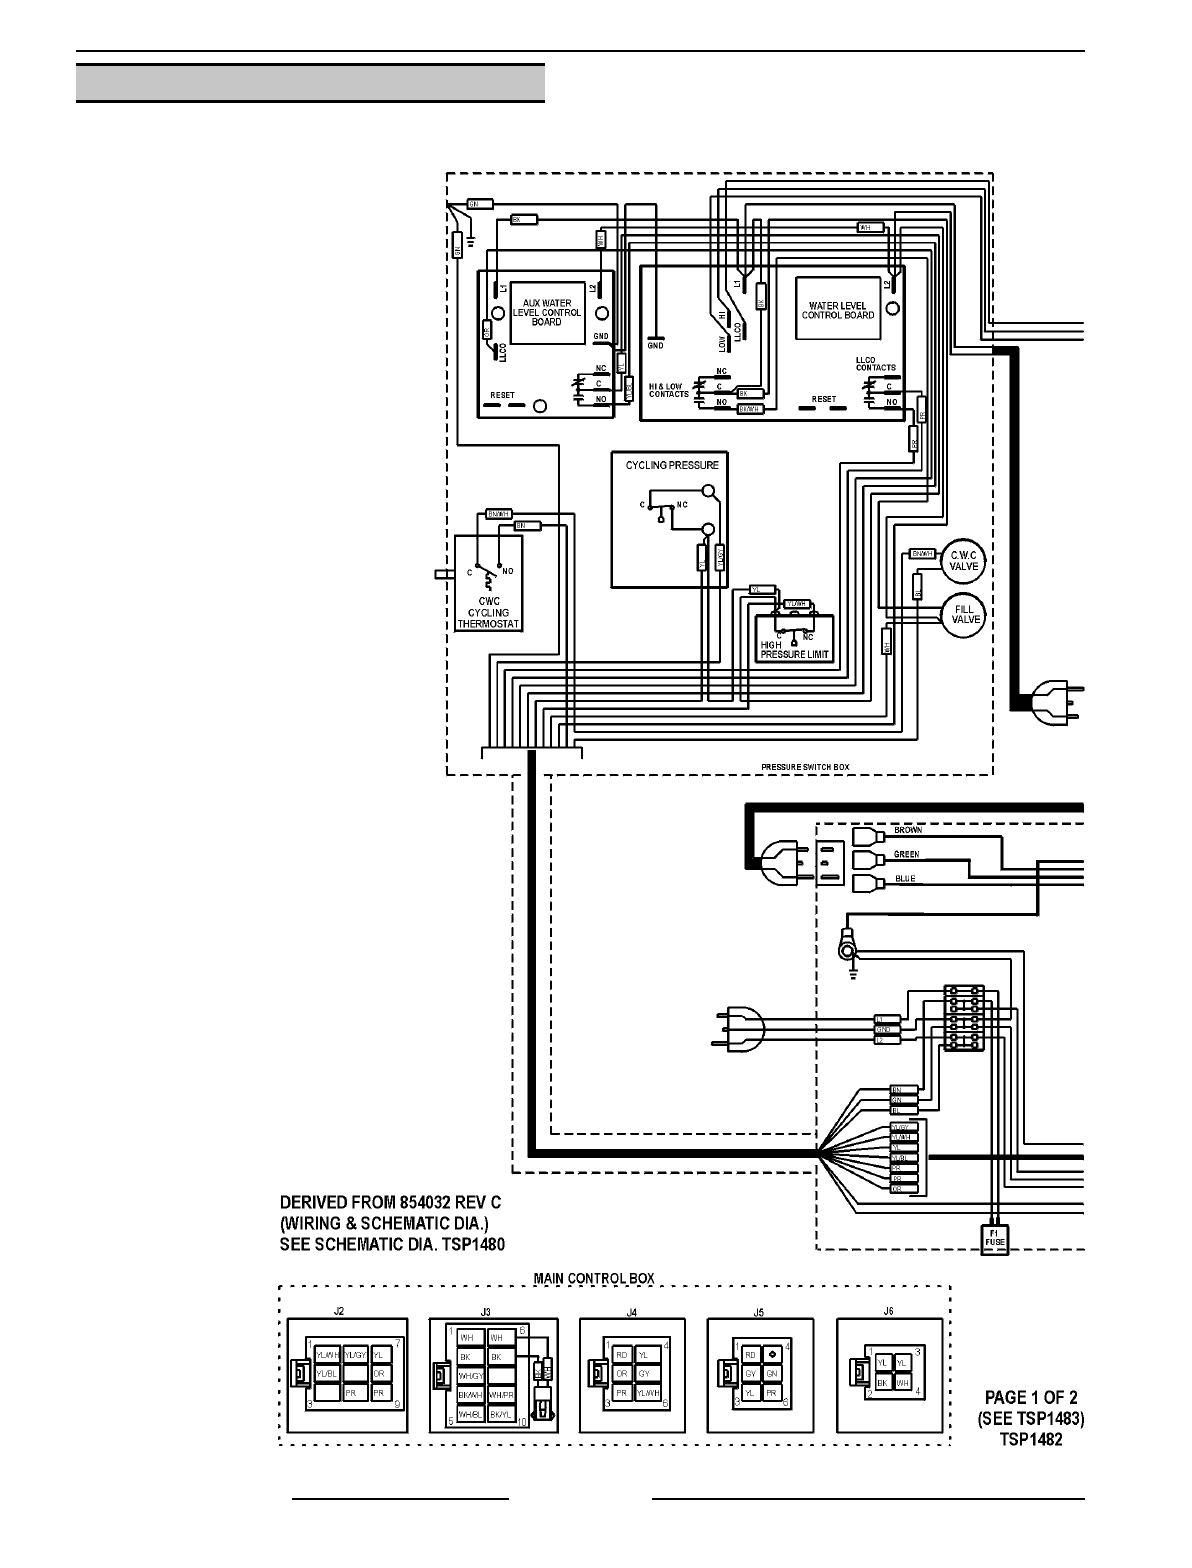 b1041b3f 50fa 43d8 a040 4ca7bae16495 bg38 page 56 of vulcan hart electric steamer vhx24g5 user guide hard wiring diagram for goulds we0511h pump at bakdesigns.co